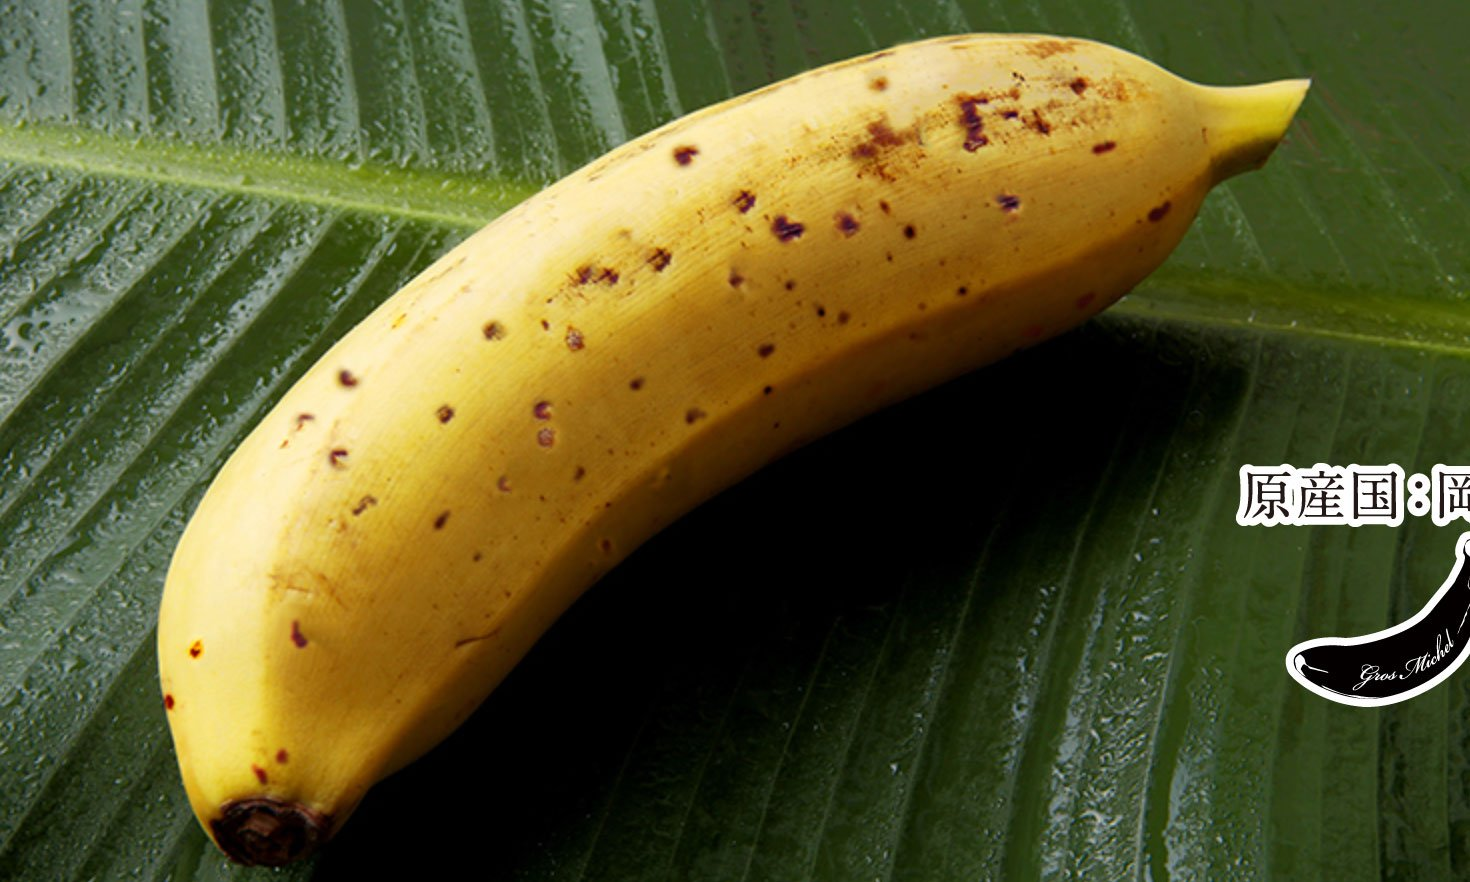 These Extremely Rare Bananas Have Edible Peels